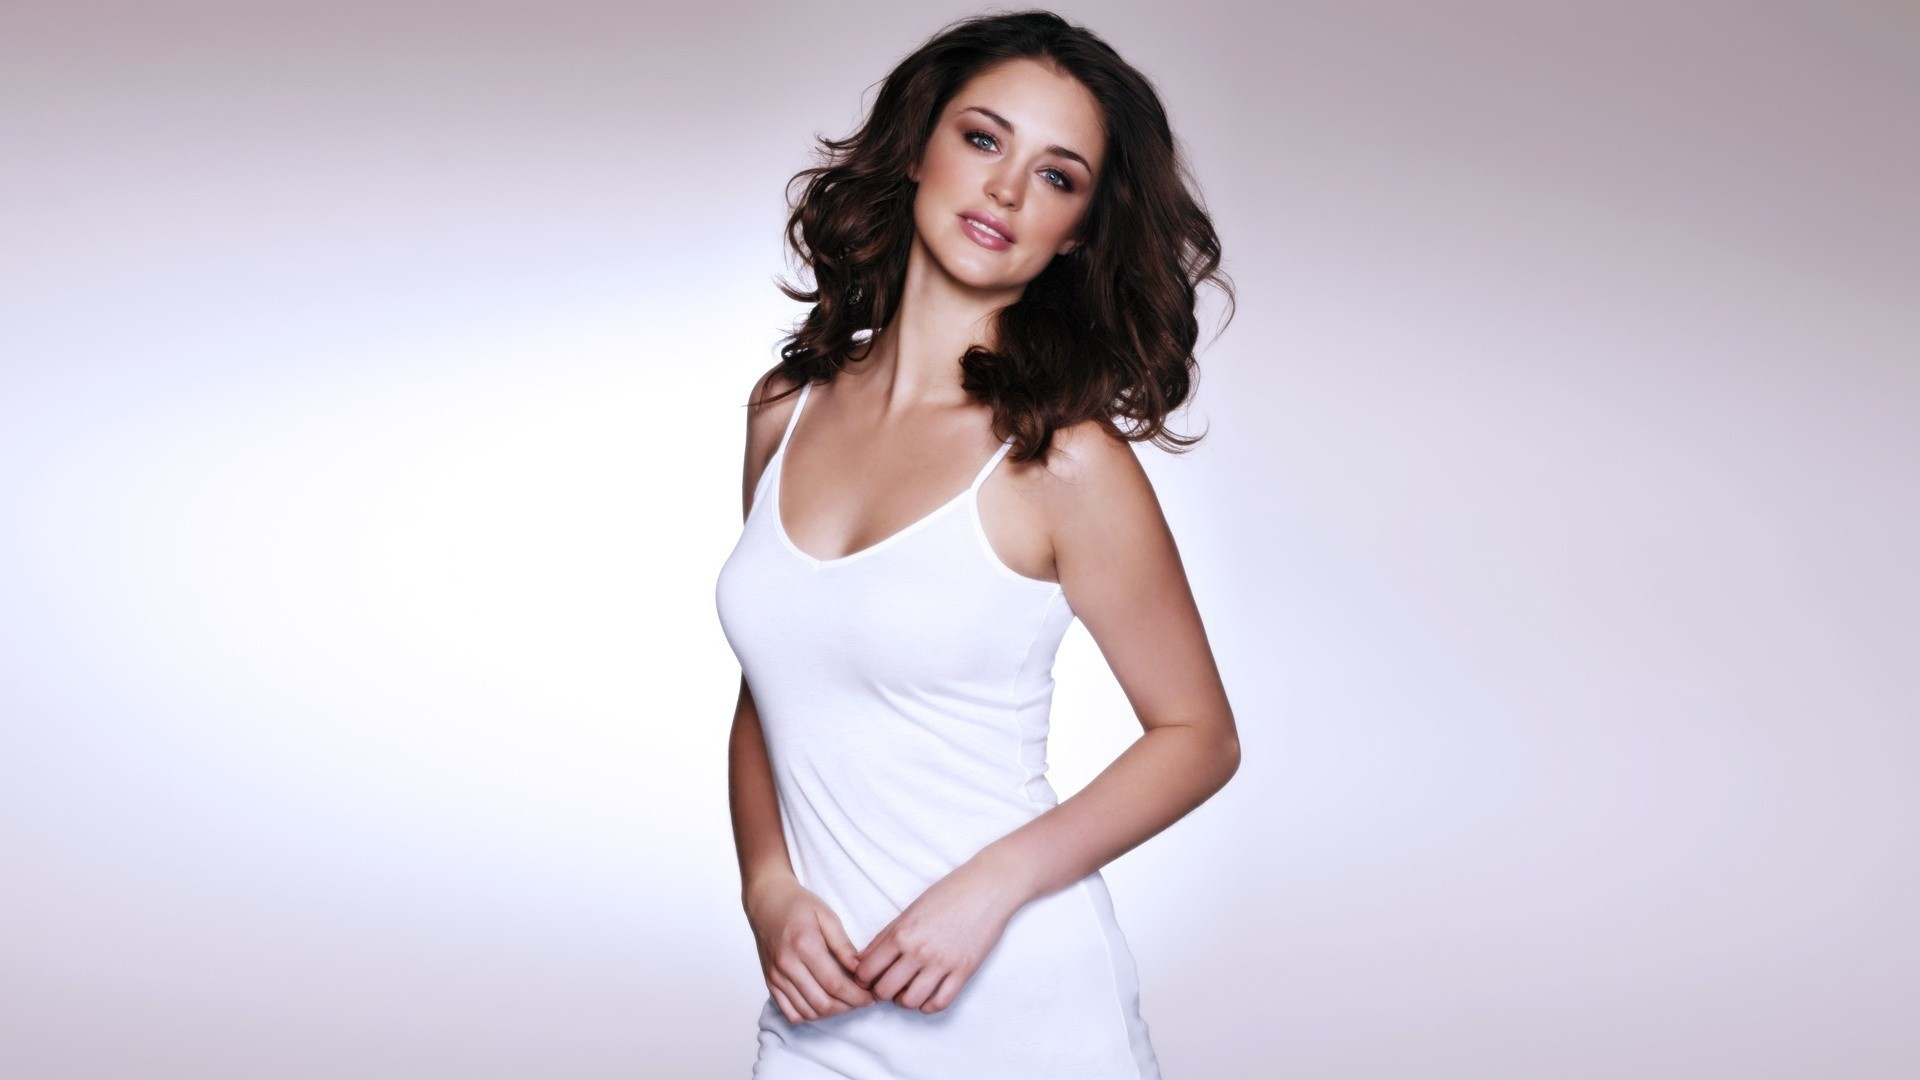 brunettes woman lauren budd HD Wallpaper